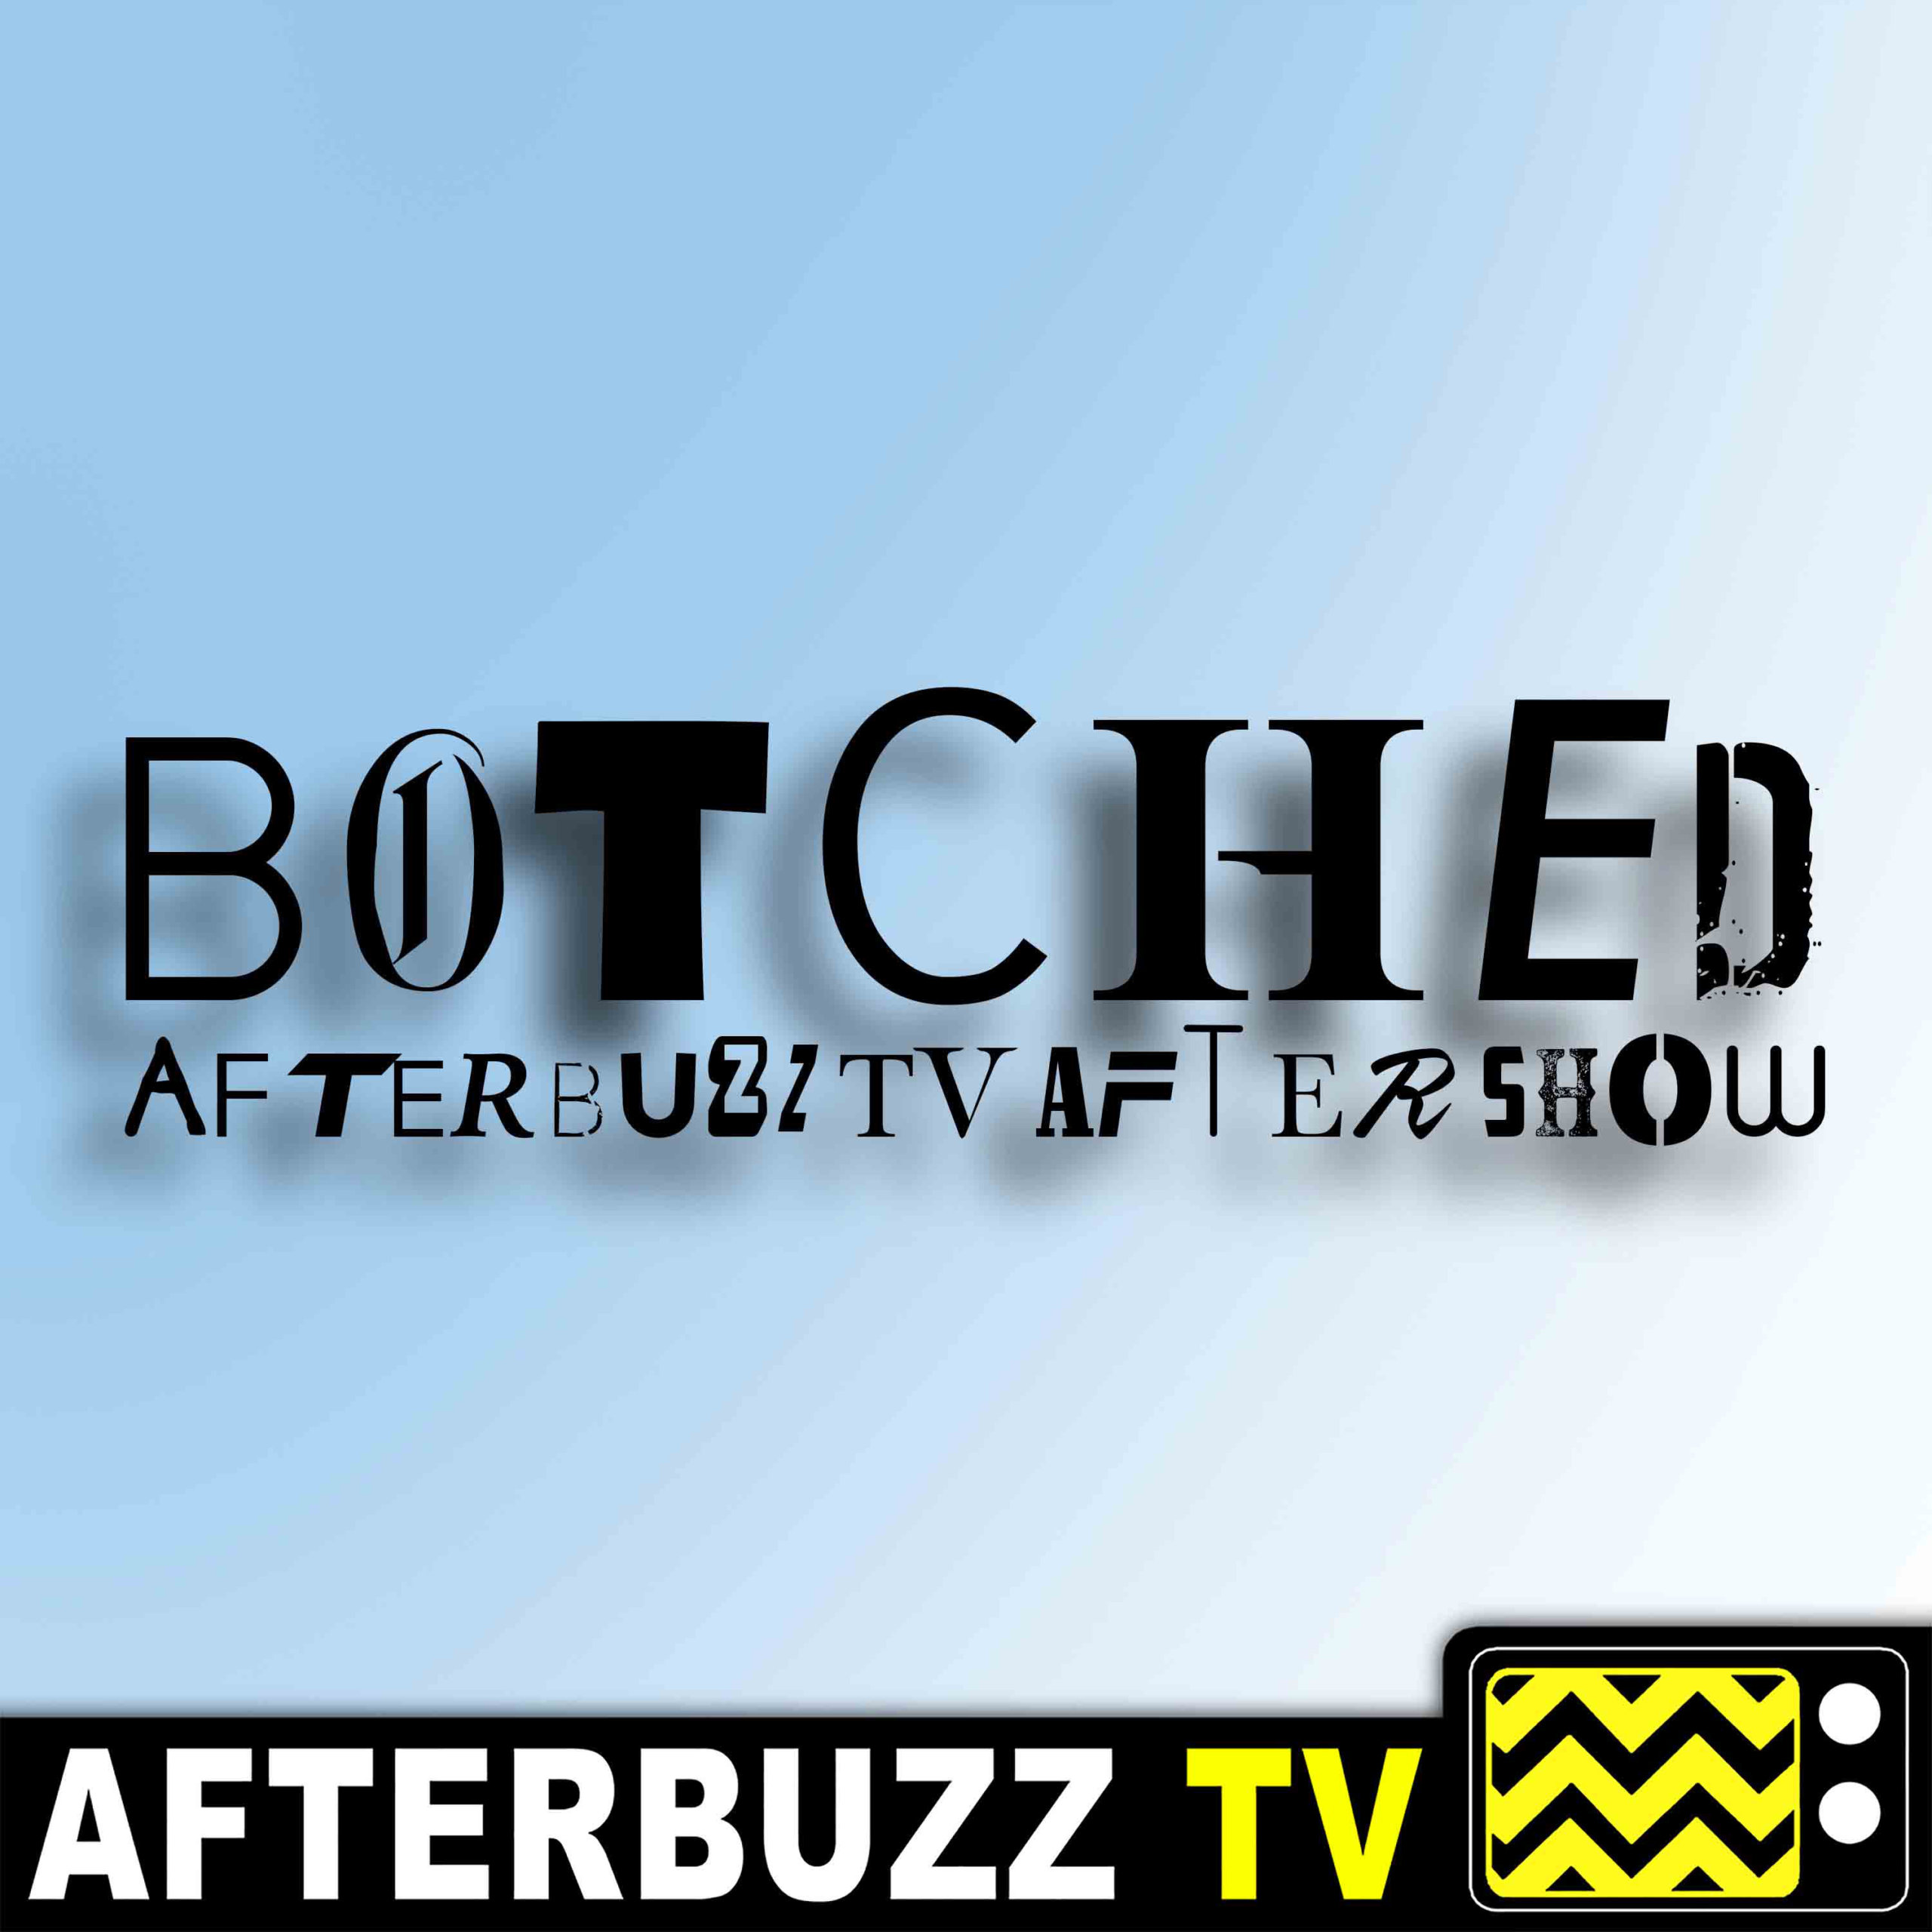 The Botched Podcast